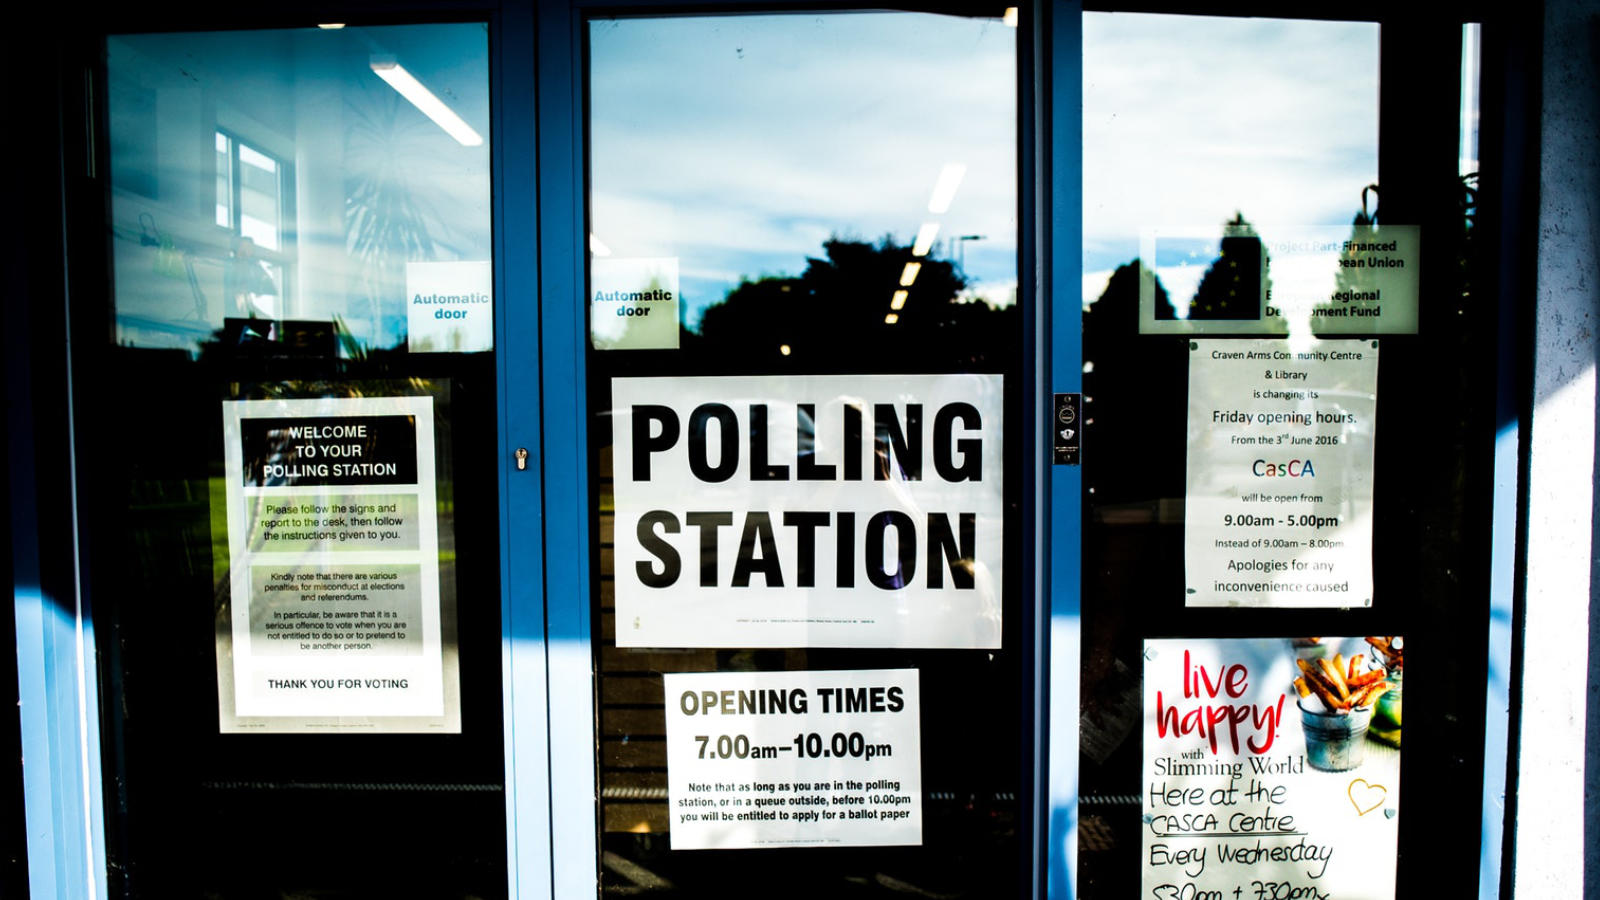 Polling Station, Image: Unsplash